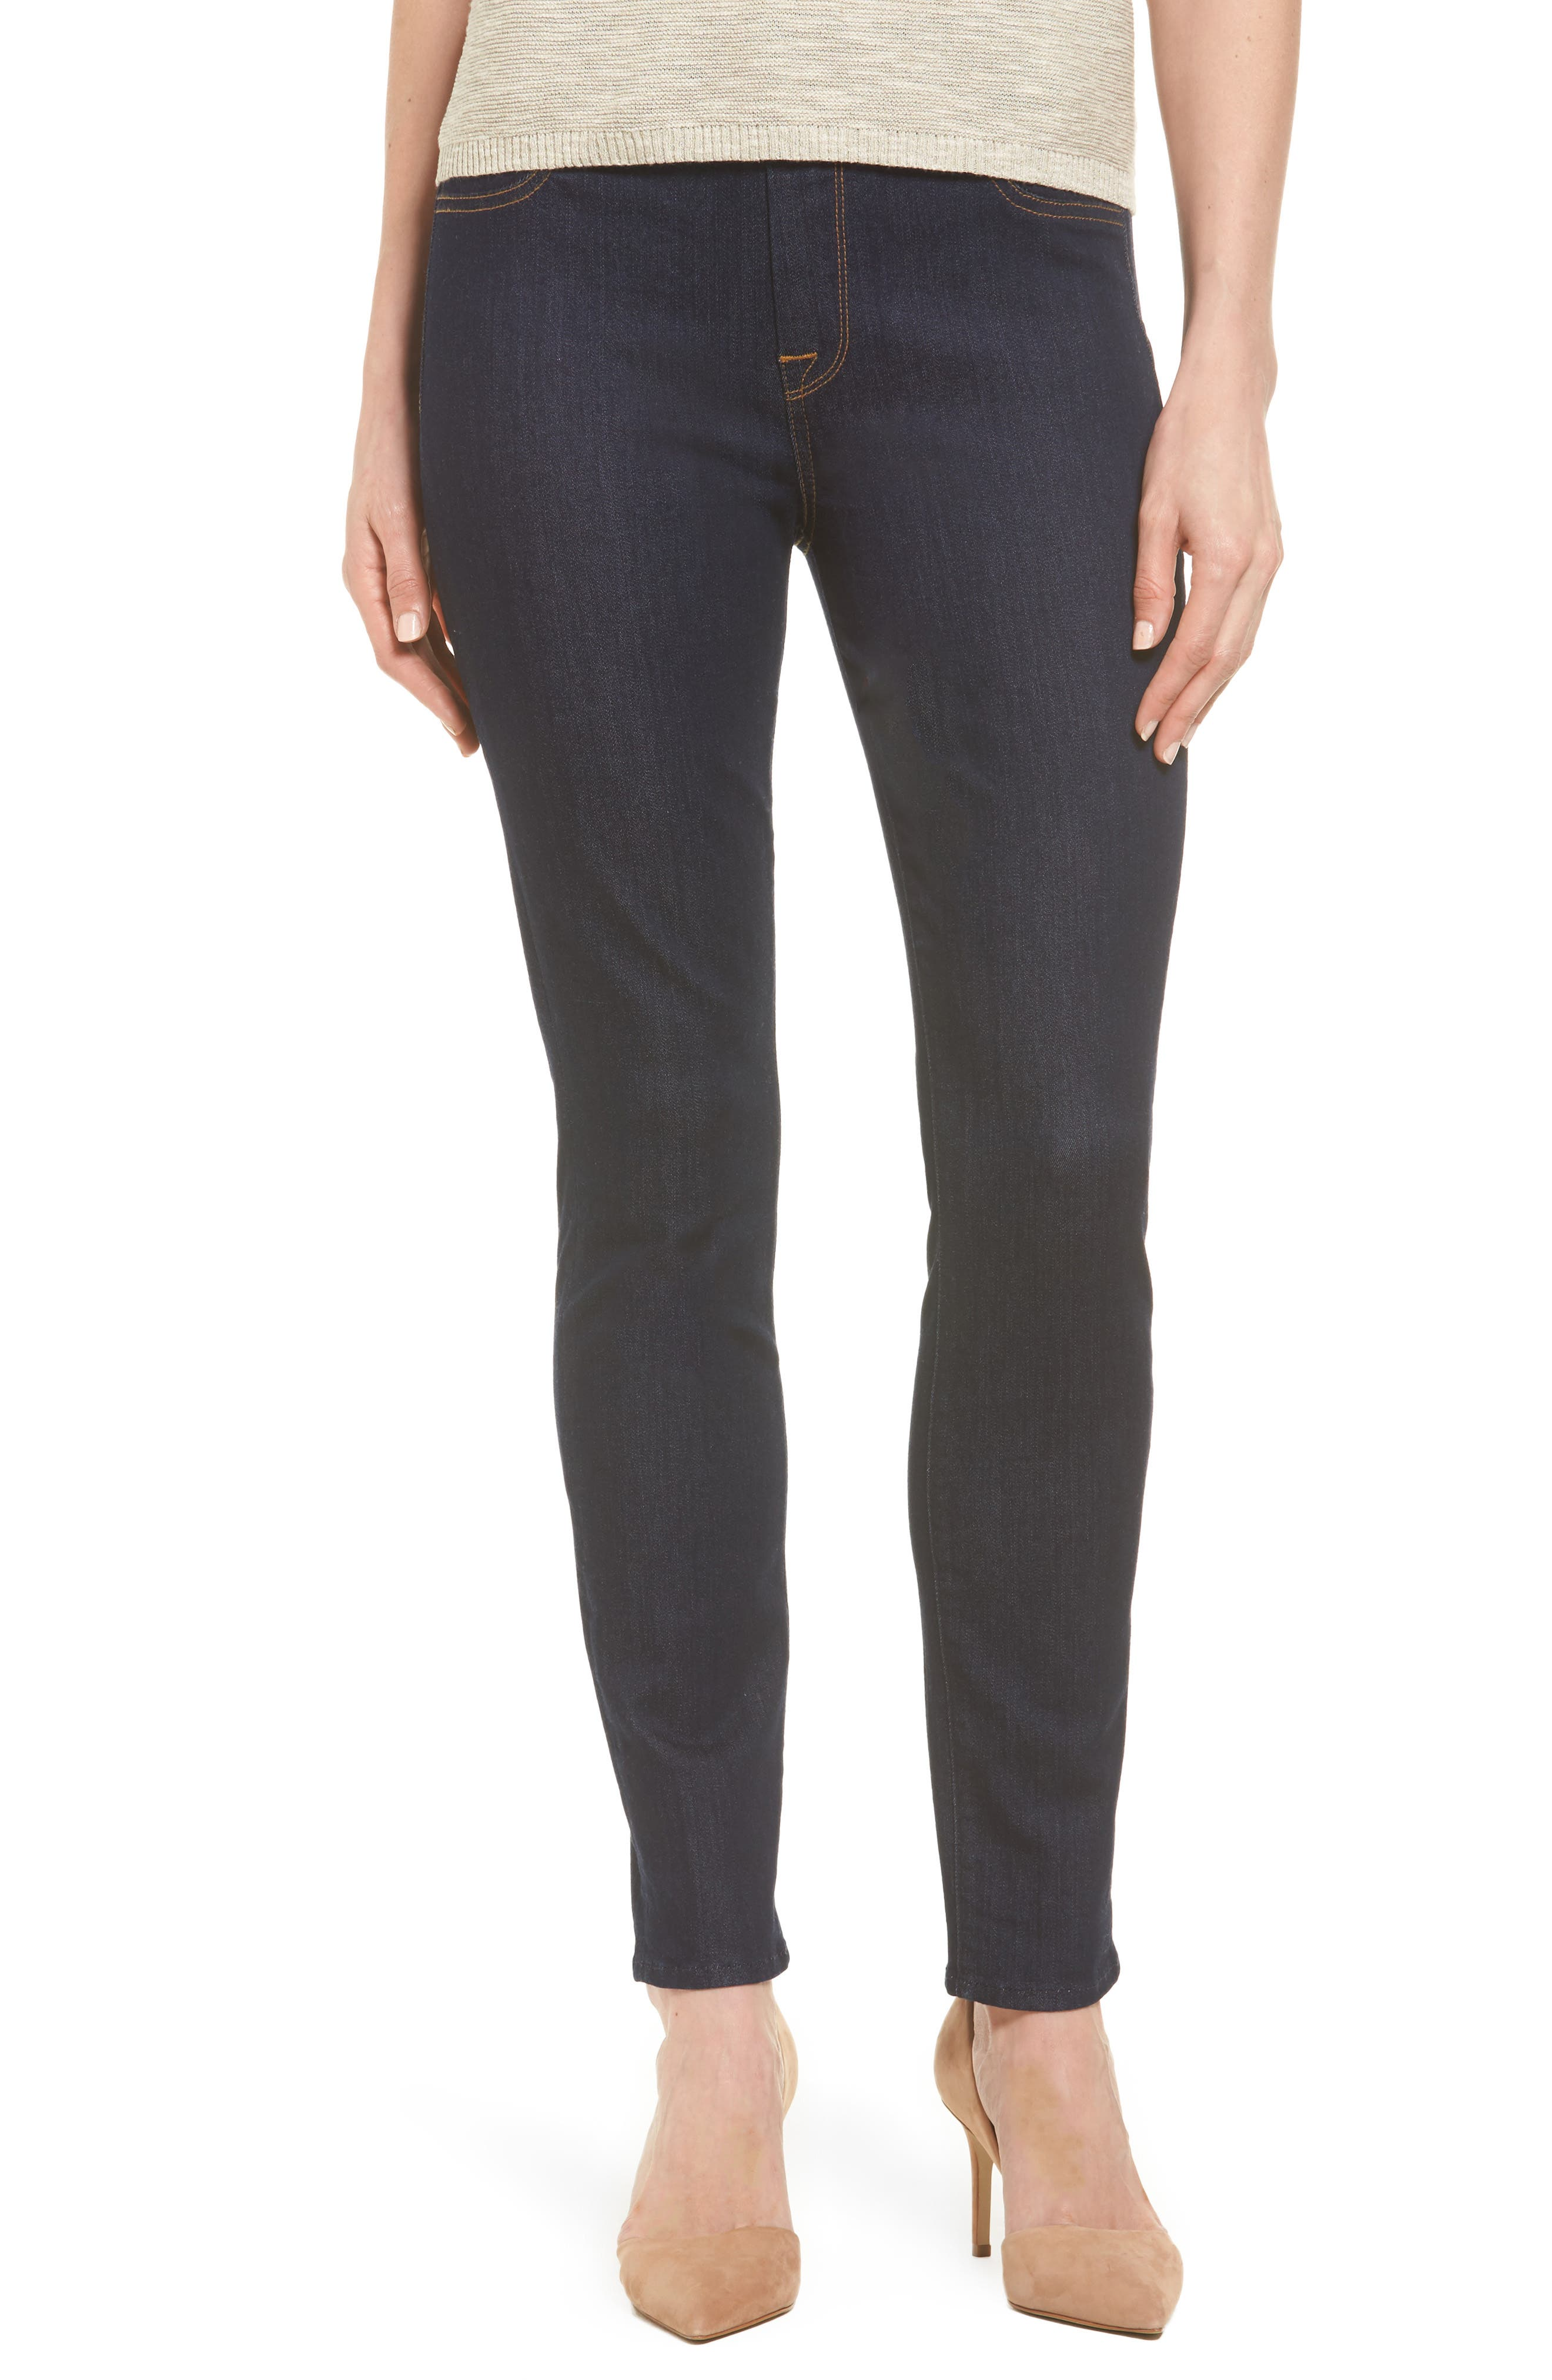 Alternate Image 1 Selected - Jen7 Comfort Stretch Denim Skinny Jeans (Riche Touch Rinsed Night)